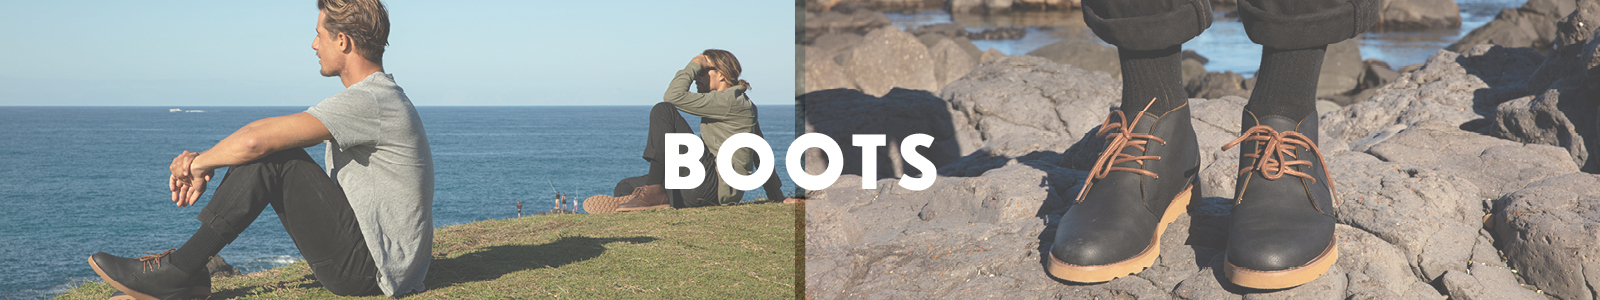 Boots Category Banner